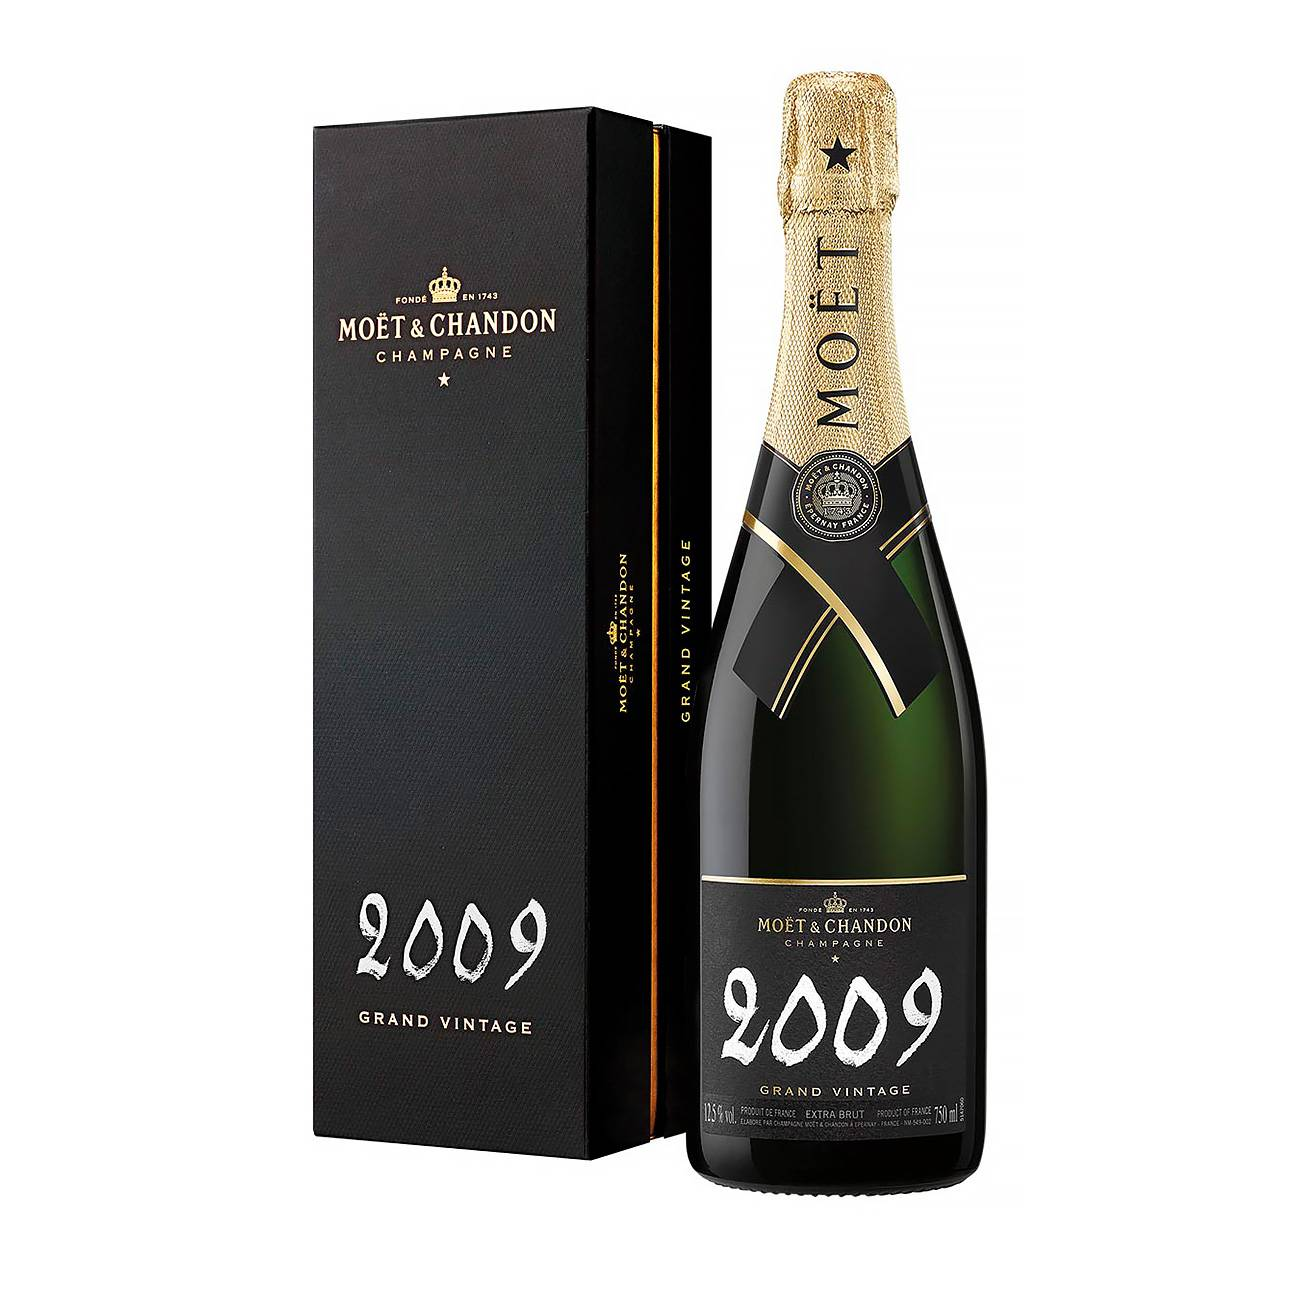 Sampanie, VINTAGE BRUT 750 ML, Moet & Chandon